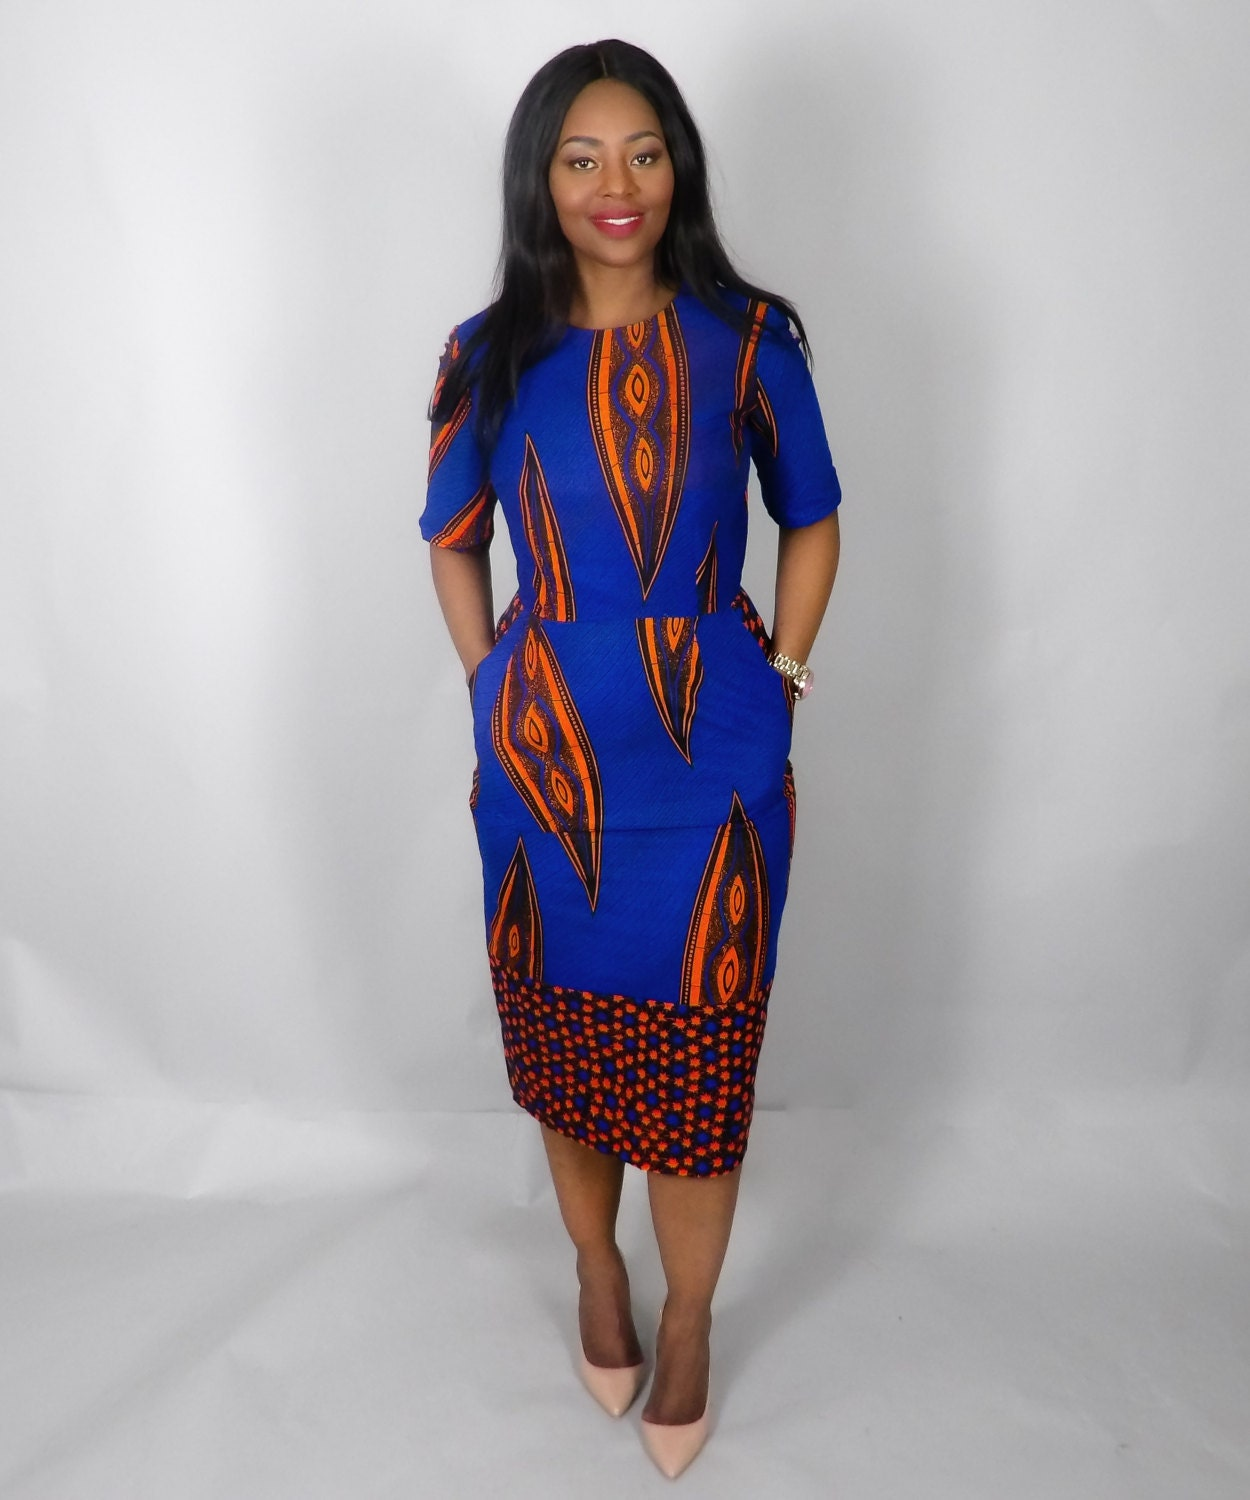 SALE NEW IN African mixed print fitted dressAfrican clothingAnkaraAfrican dresseswax print dress